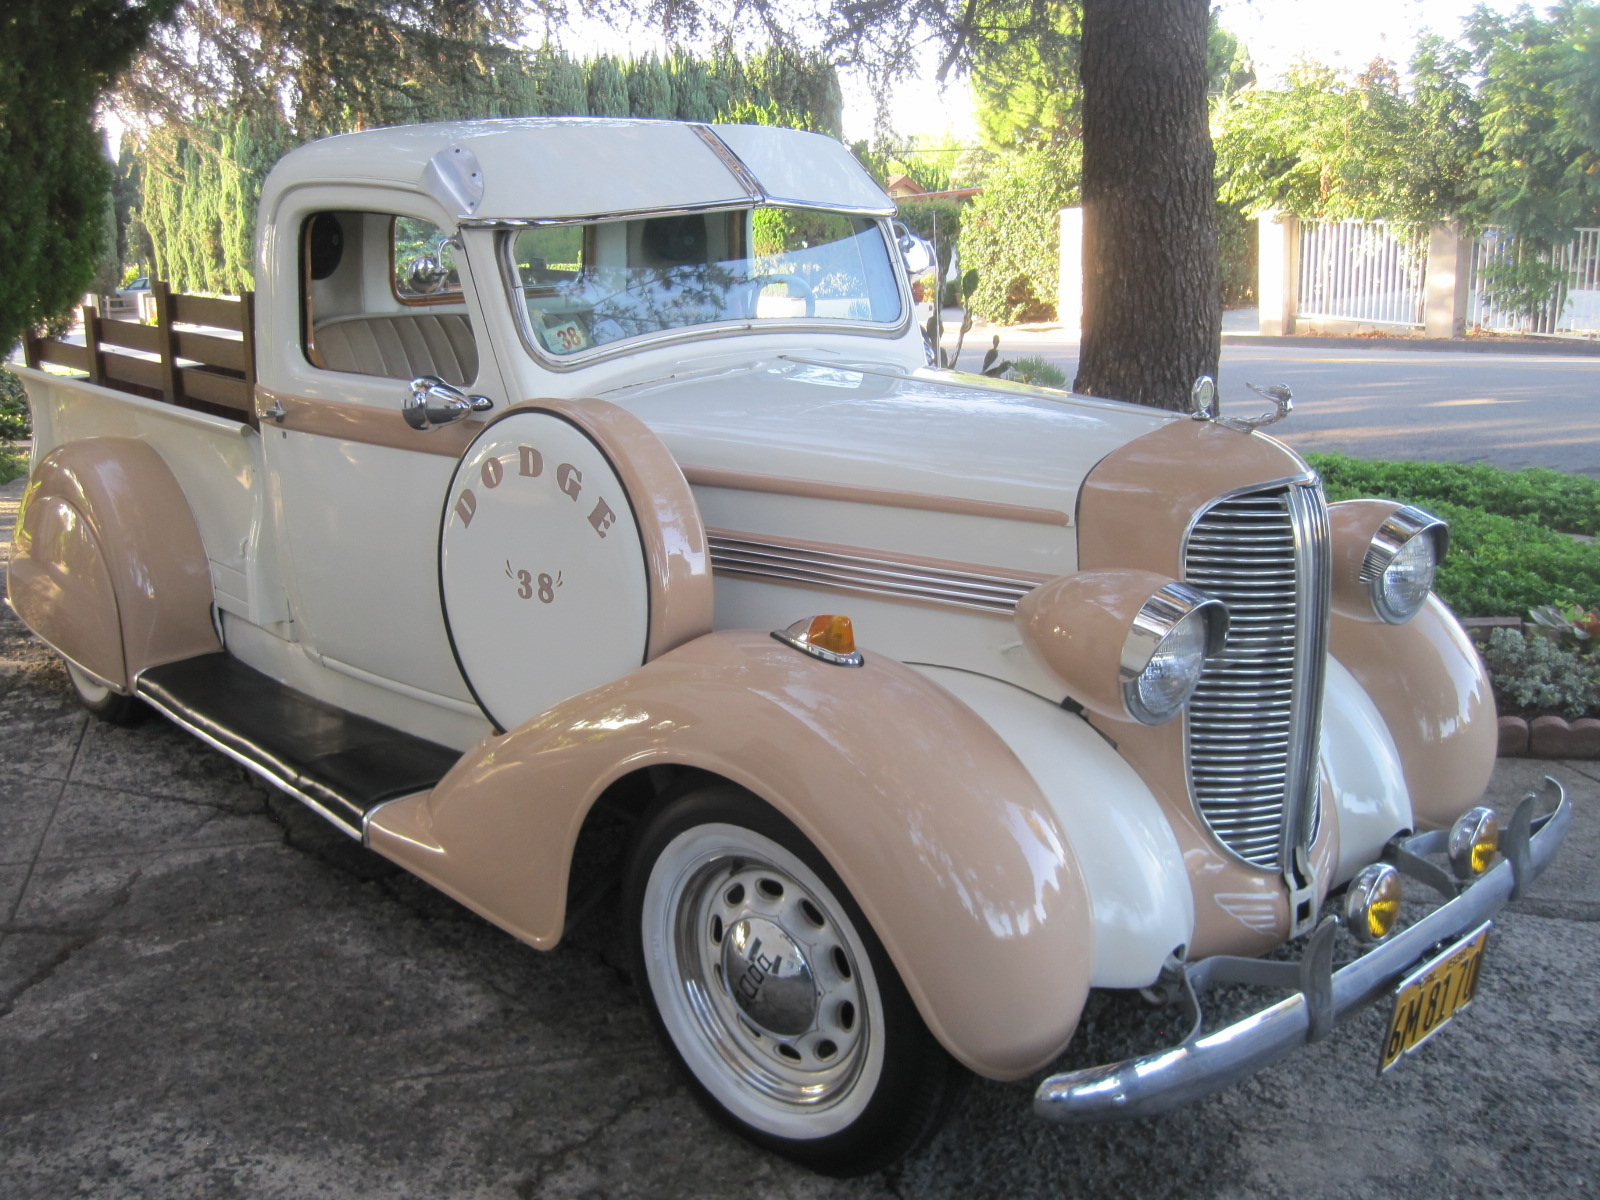 1938 dodge truck low rider for sale phil newey sports cars. Black Bedroom Furniture Sets. Home Design Ideas